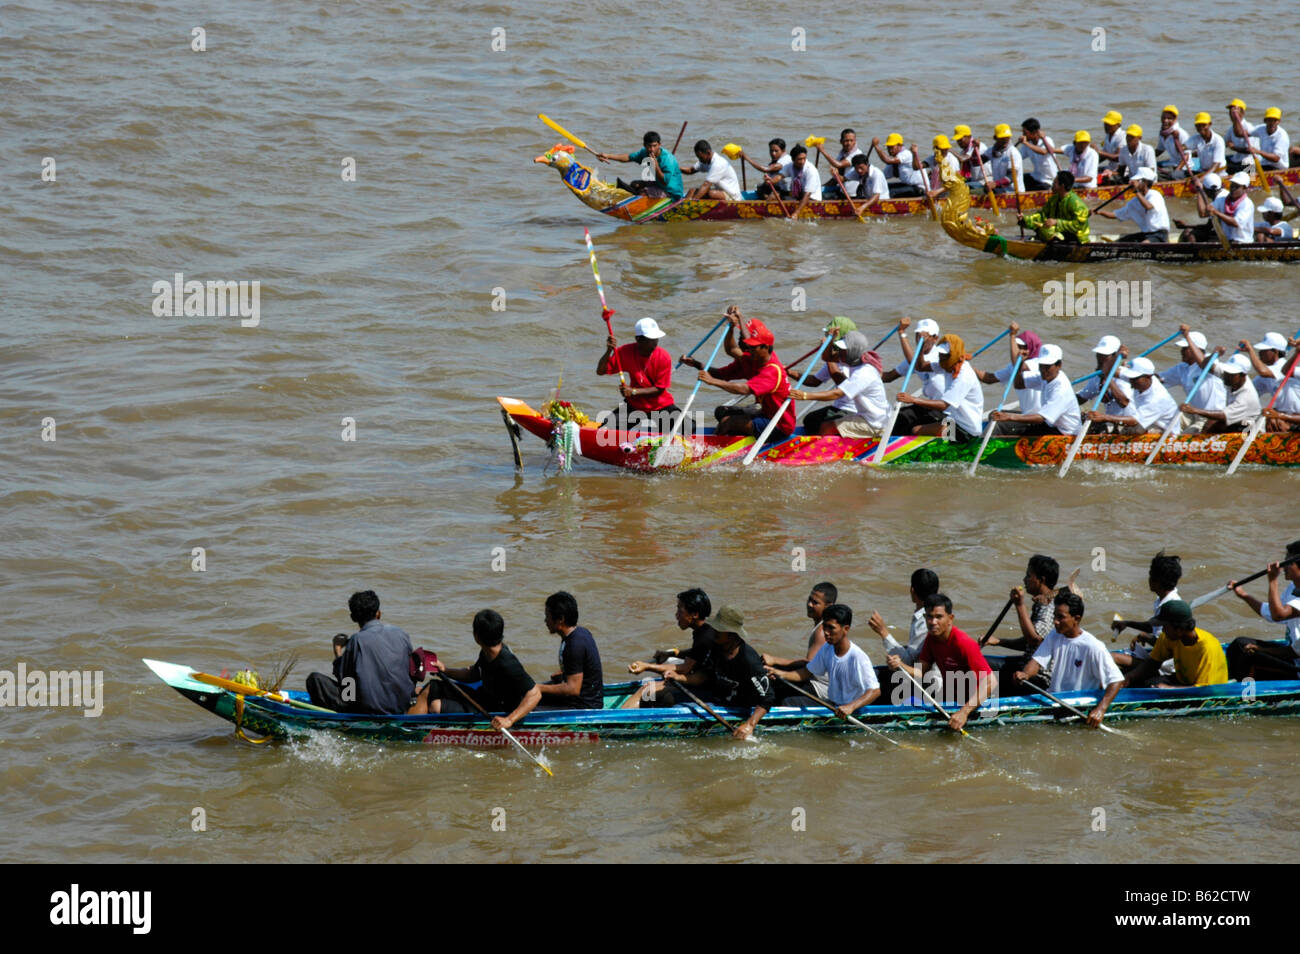 Big rowing boats in competition with many rowers, Water Festival, Phnom Penh, Cambodia, Southeast Asia Stock Photo